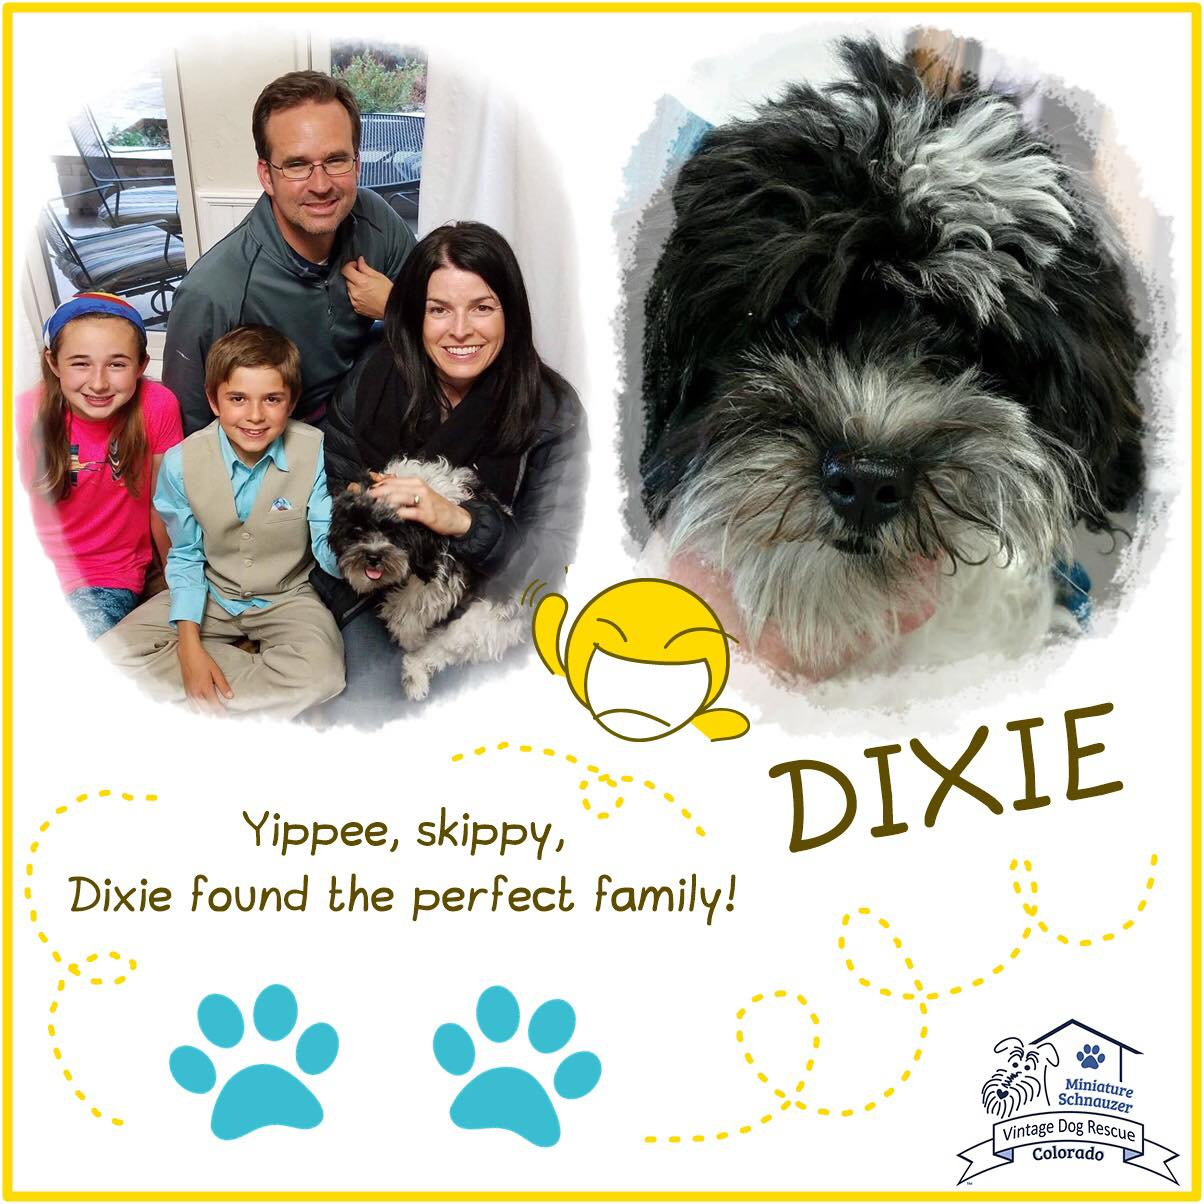 Dixie was adopted!